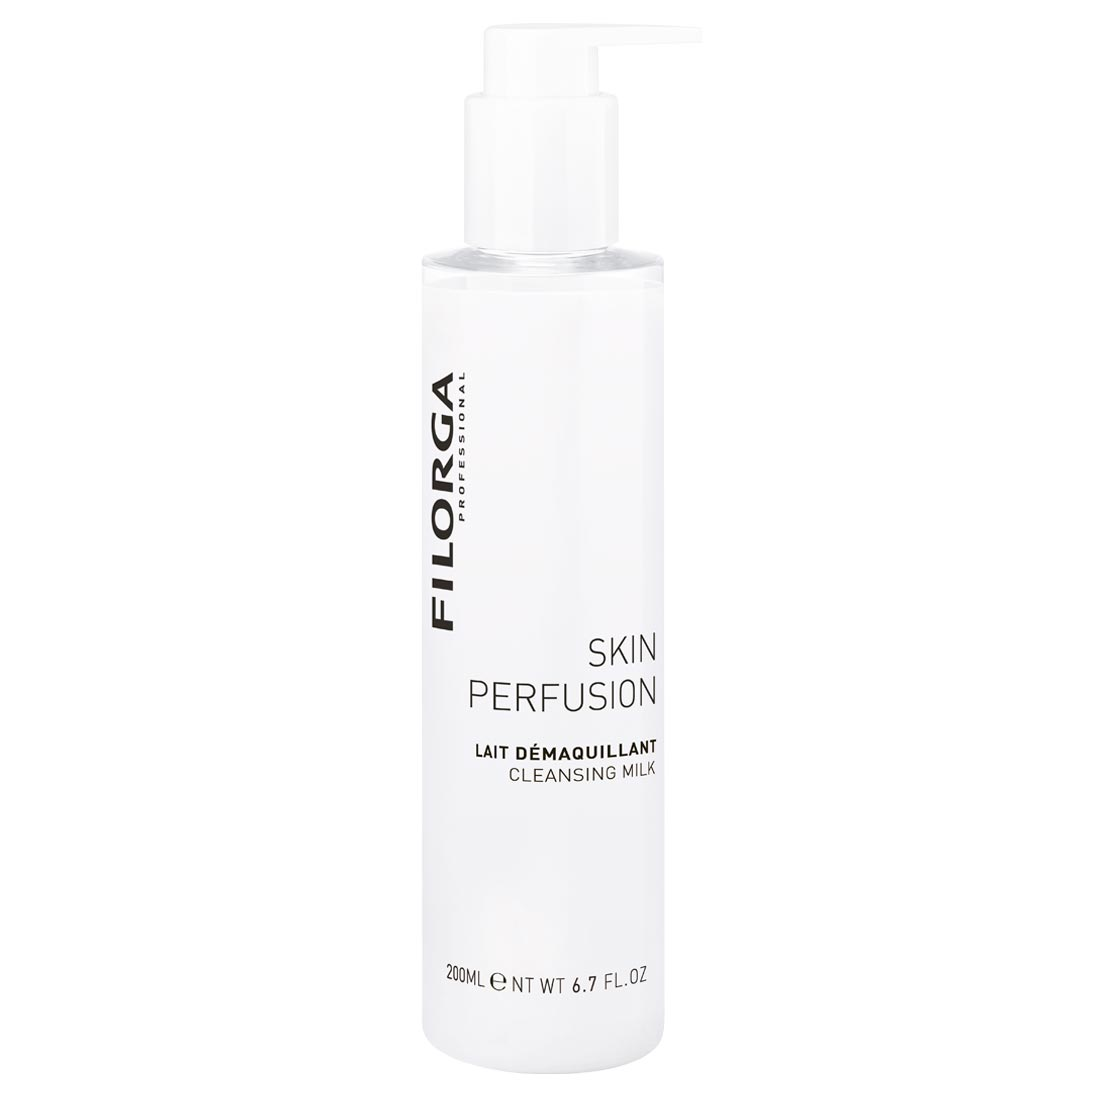 SKIN PERFUSION CLEANSING MILK 1